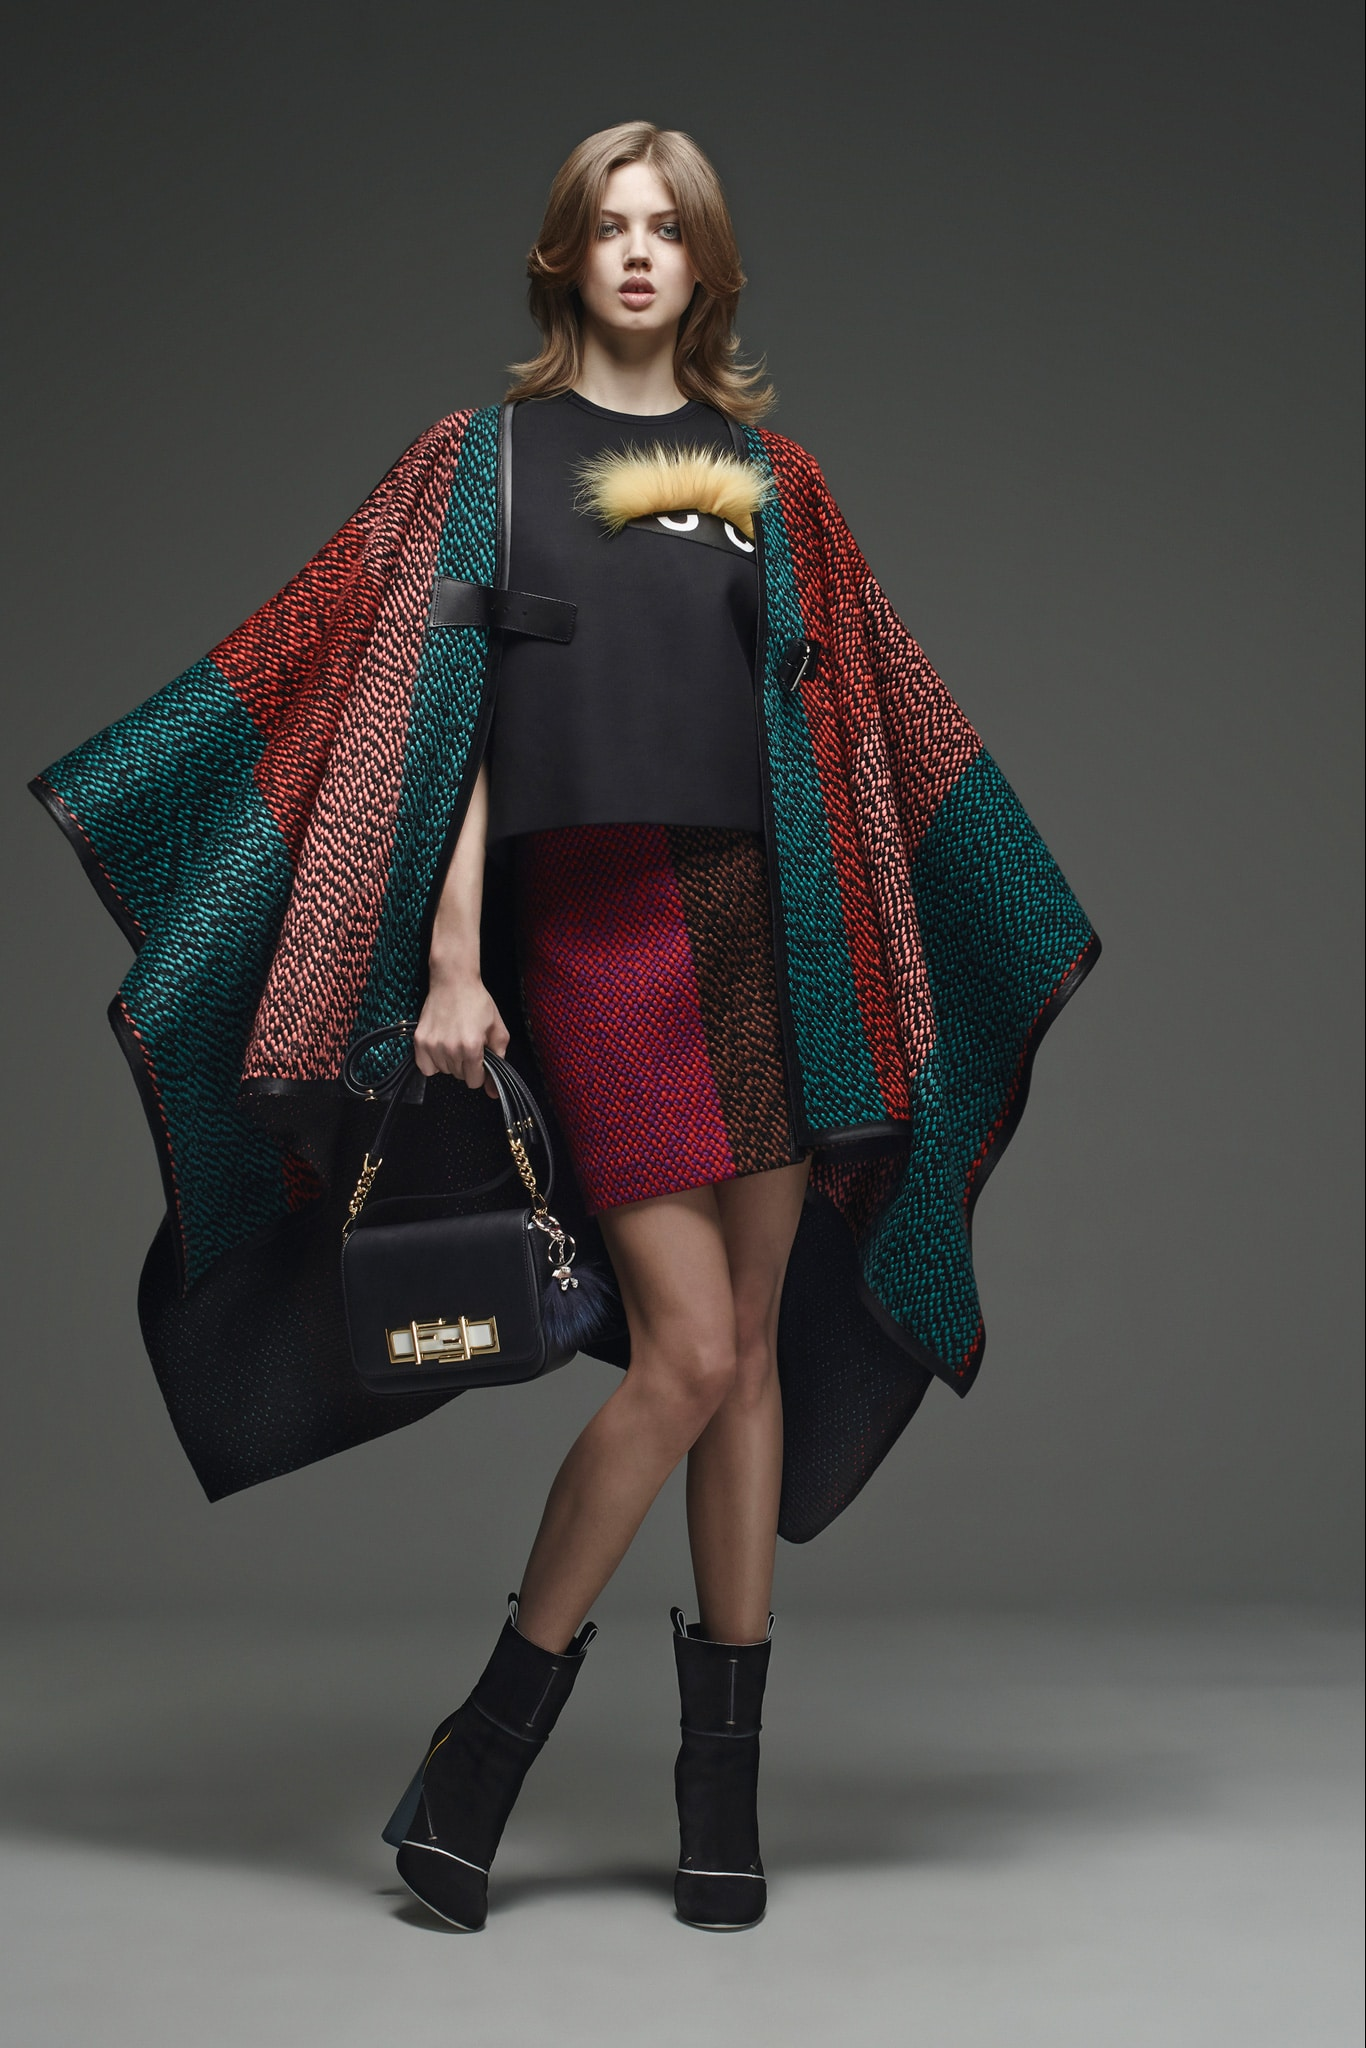 e21f9b601e5d Fendi Pre-Fall 2015 Lookbook Collection